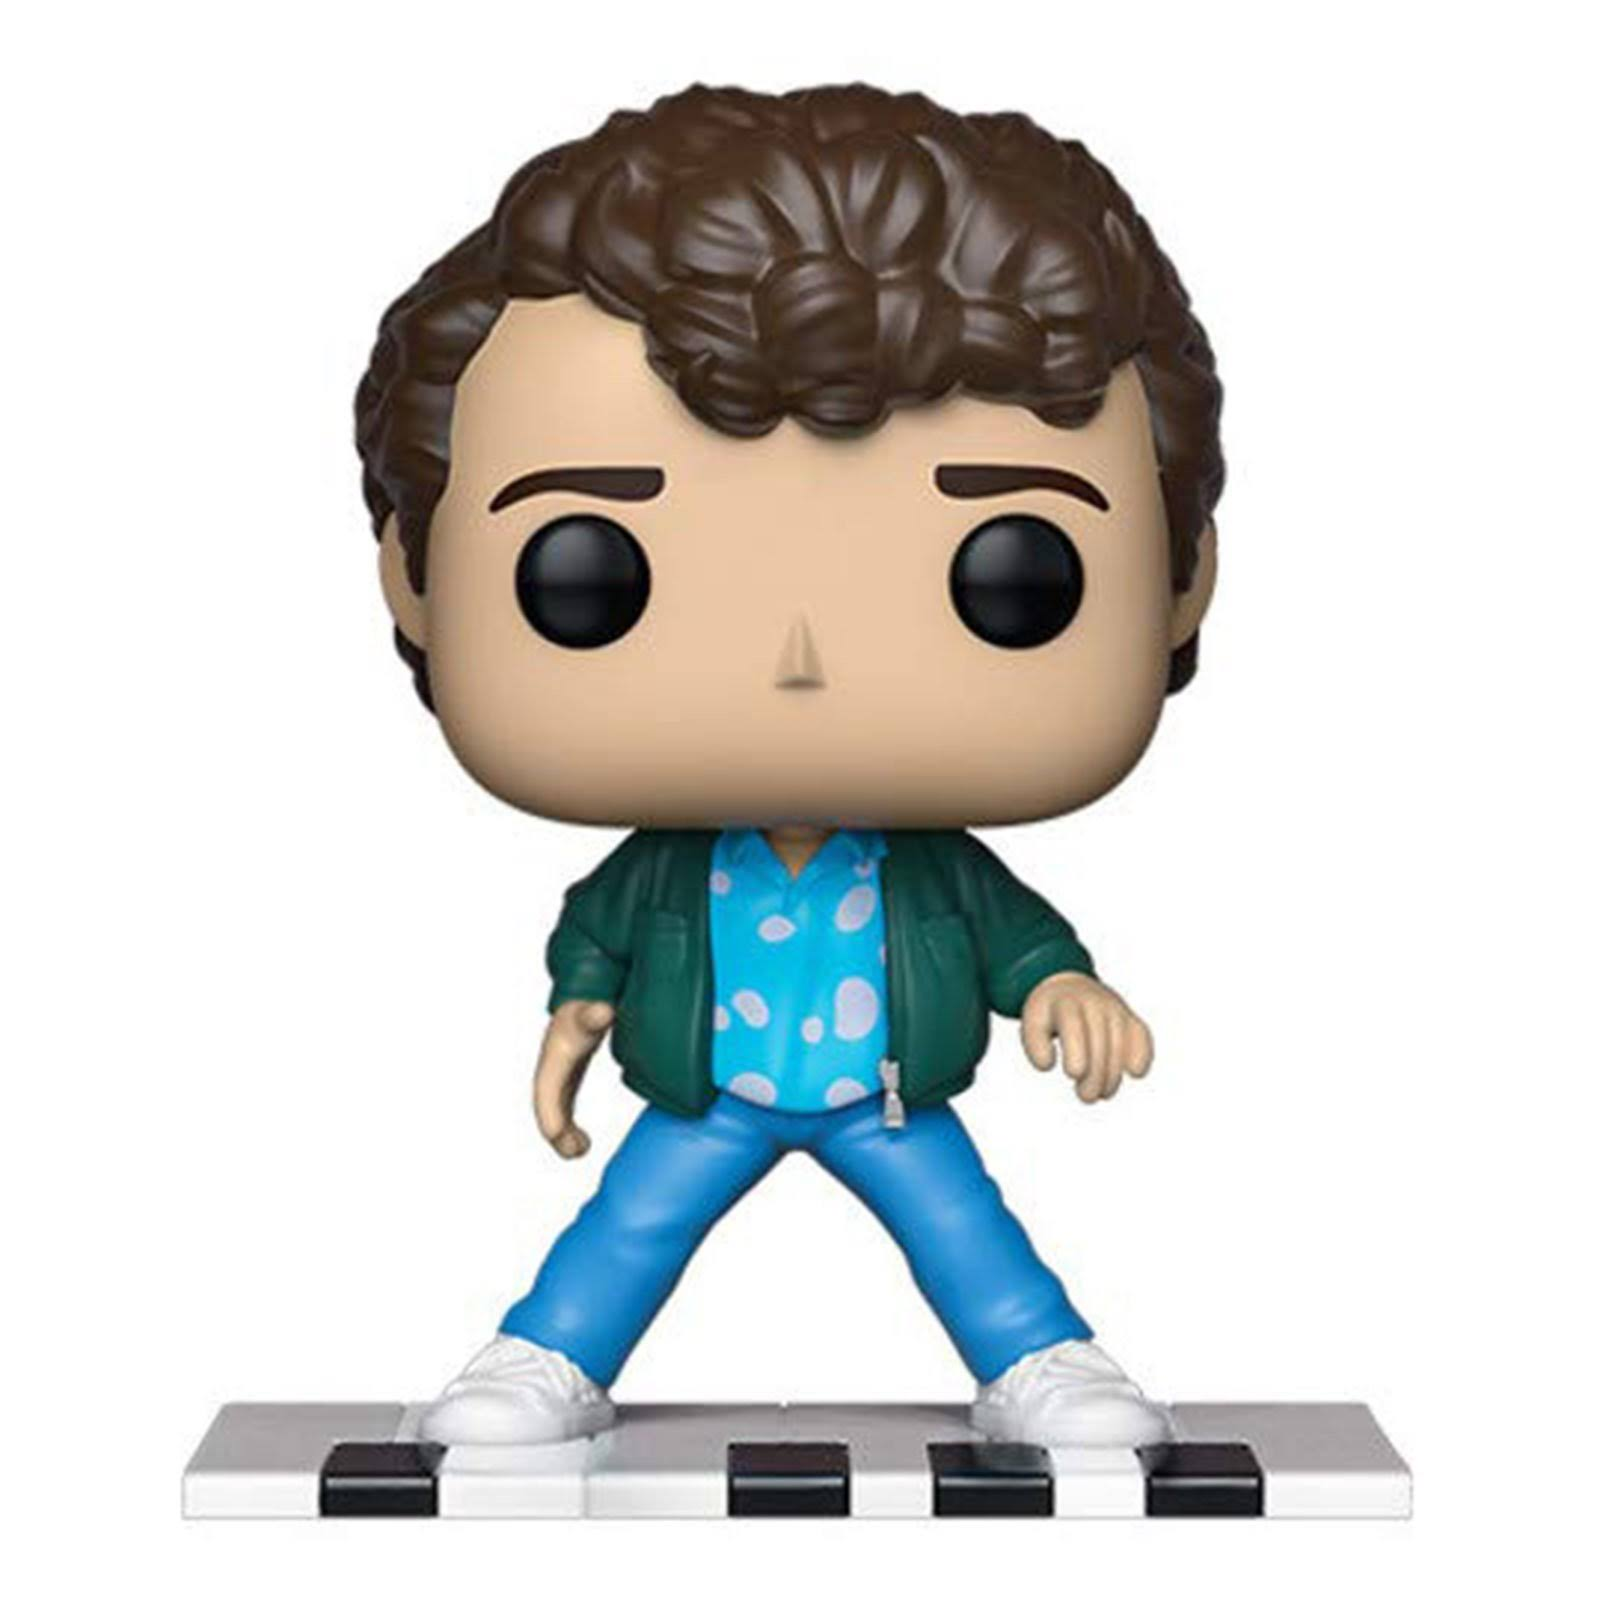 Funko Pop Big Josh Baskin with Piano Outfit Movies Vinyl Figure